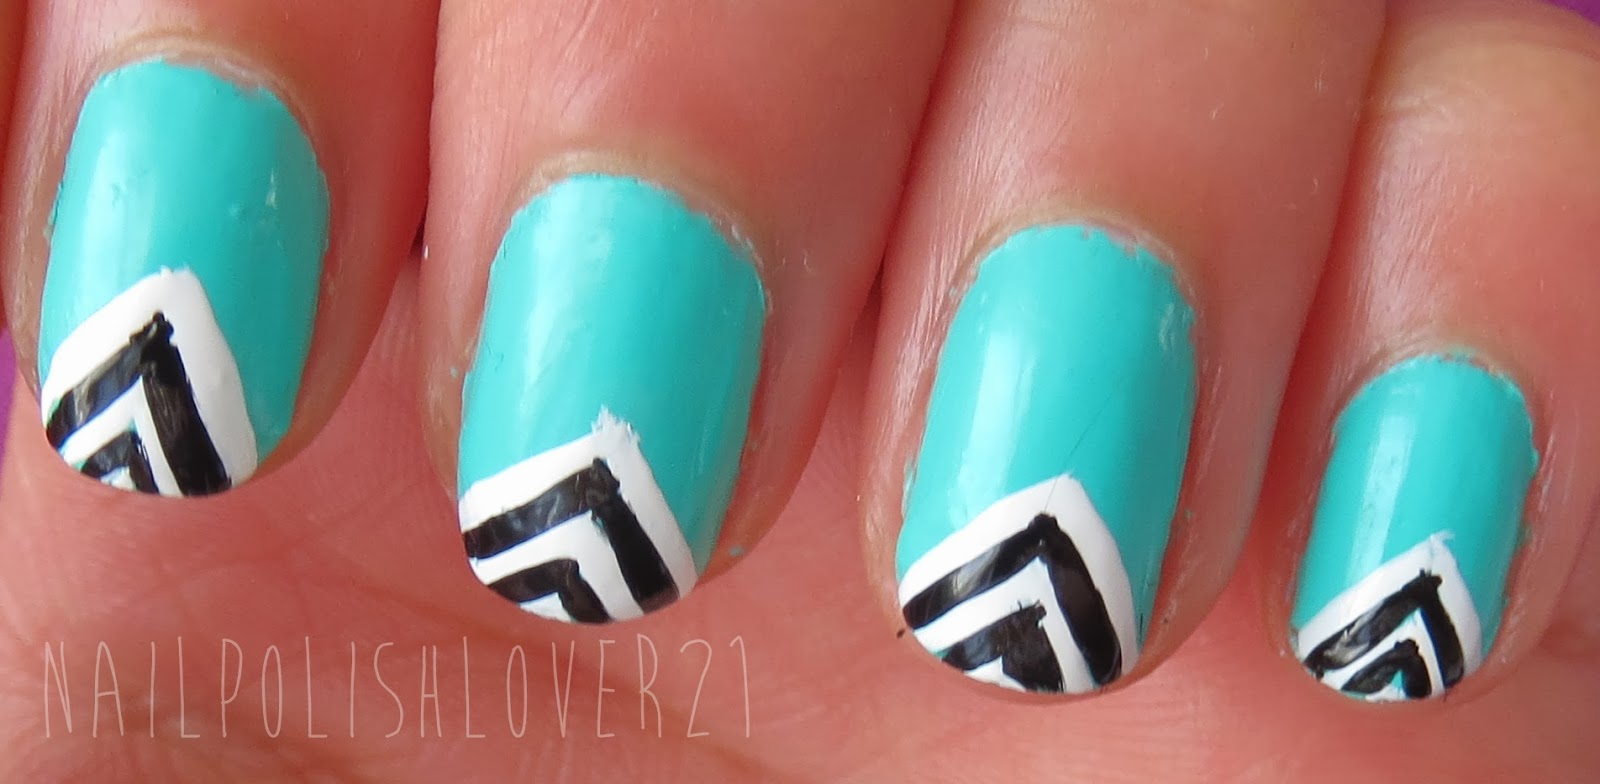 Nail Polish Reviews Swatches Turquoise Black And White Nail Art